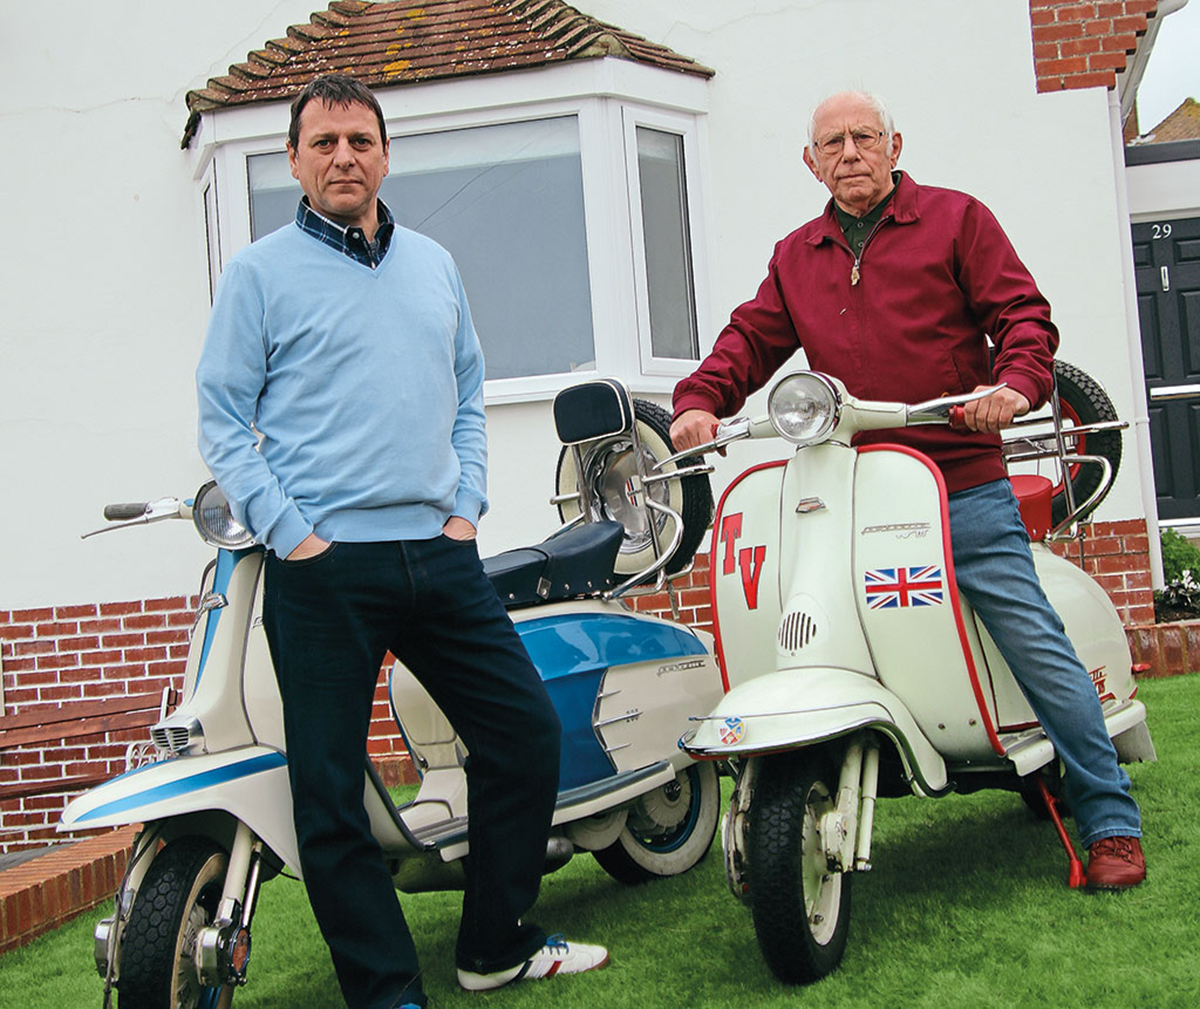 Classic Scooterist: Bonding on two wheels